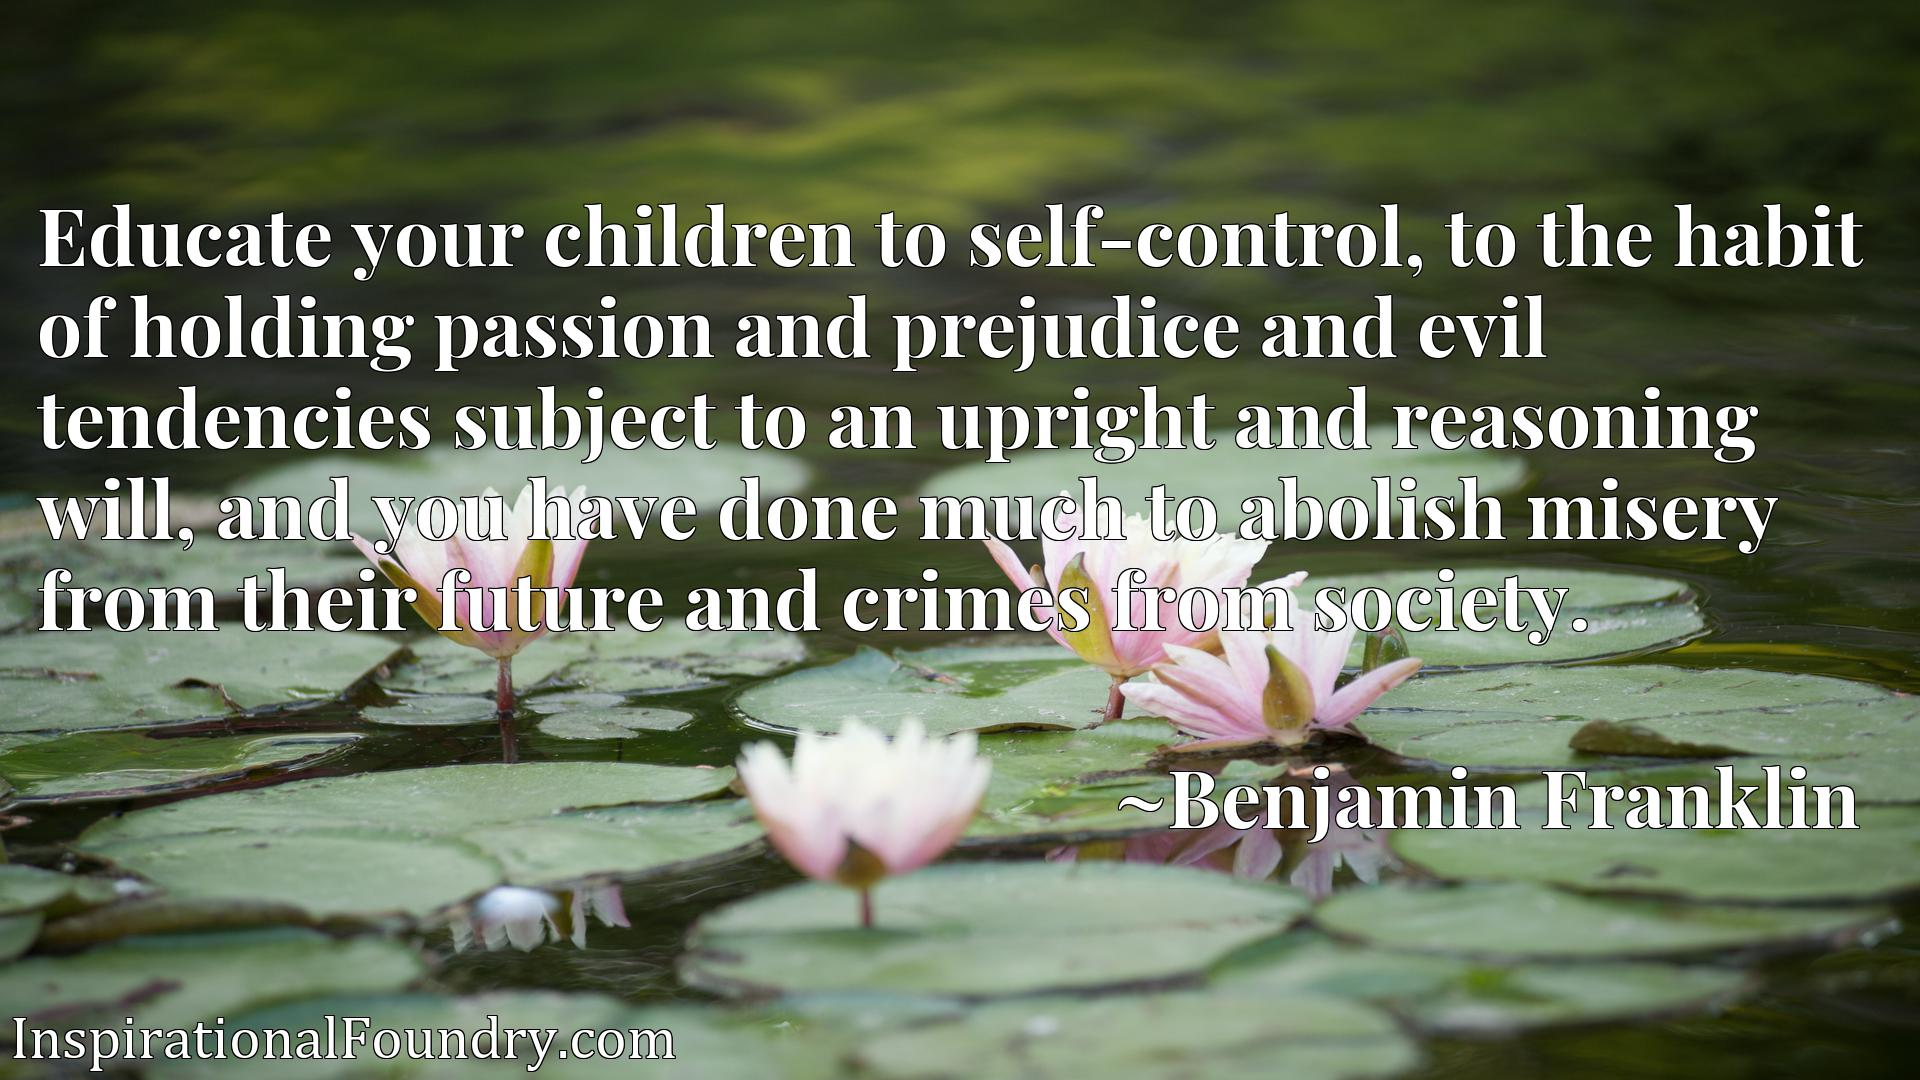 Educate your children to self-control, to the habit of holding passion and prejudice and evil tendencies subject to an upright and reasoning will, and you have done much to abolish misery from their future and crimes from society.